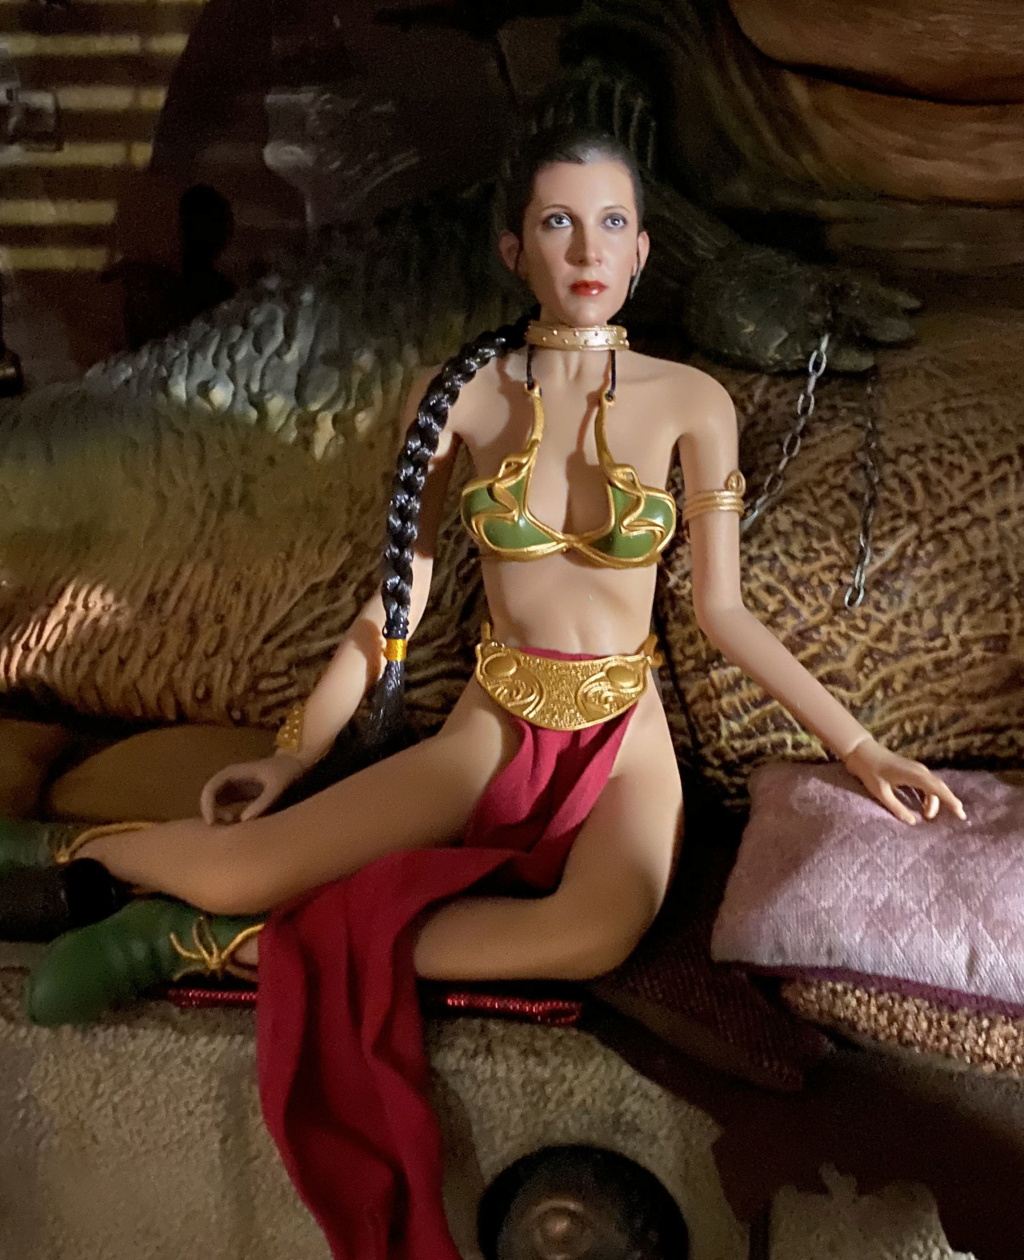 StarWars - NEW PRODUCT: HOT TOYS: STAR WARS: RETURN OF THE JEDI PRINCESS LEIA 1/6TH SCALE COLLECTIBLE FIGURE Img_8422